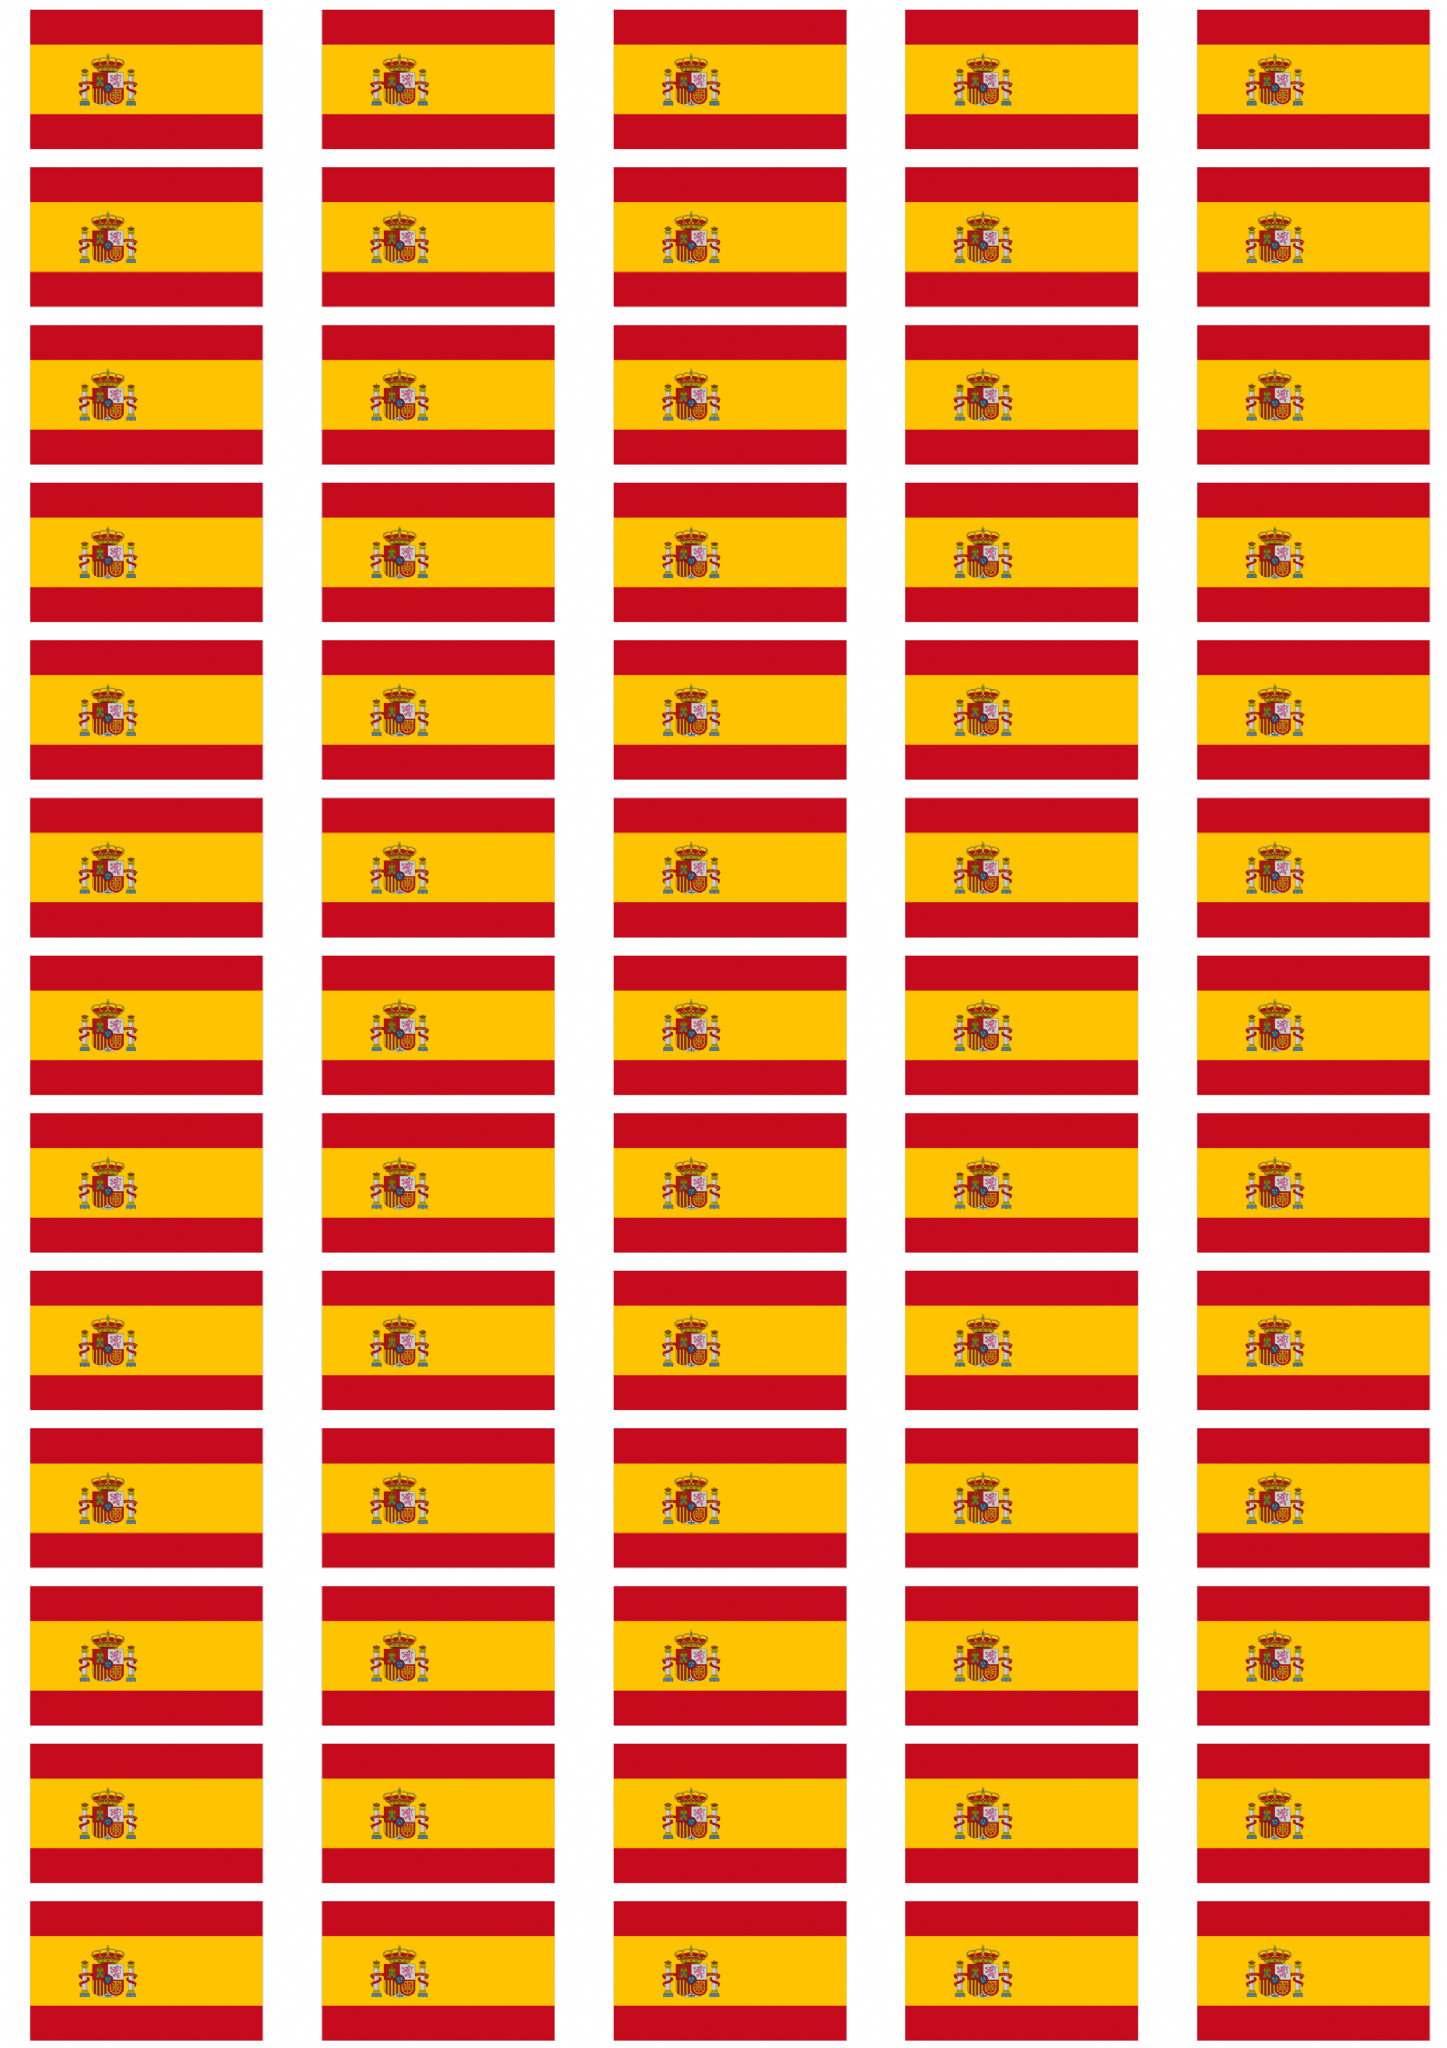 Spain flag stickers 65 per sheet